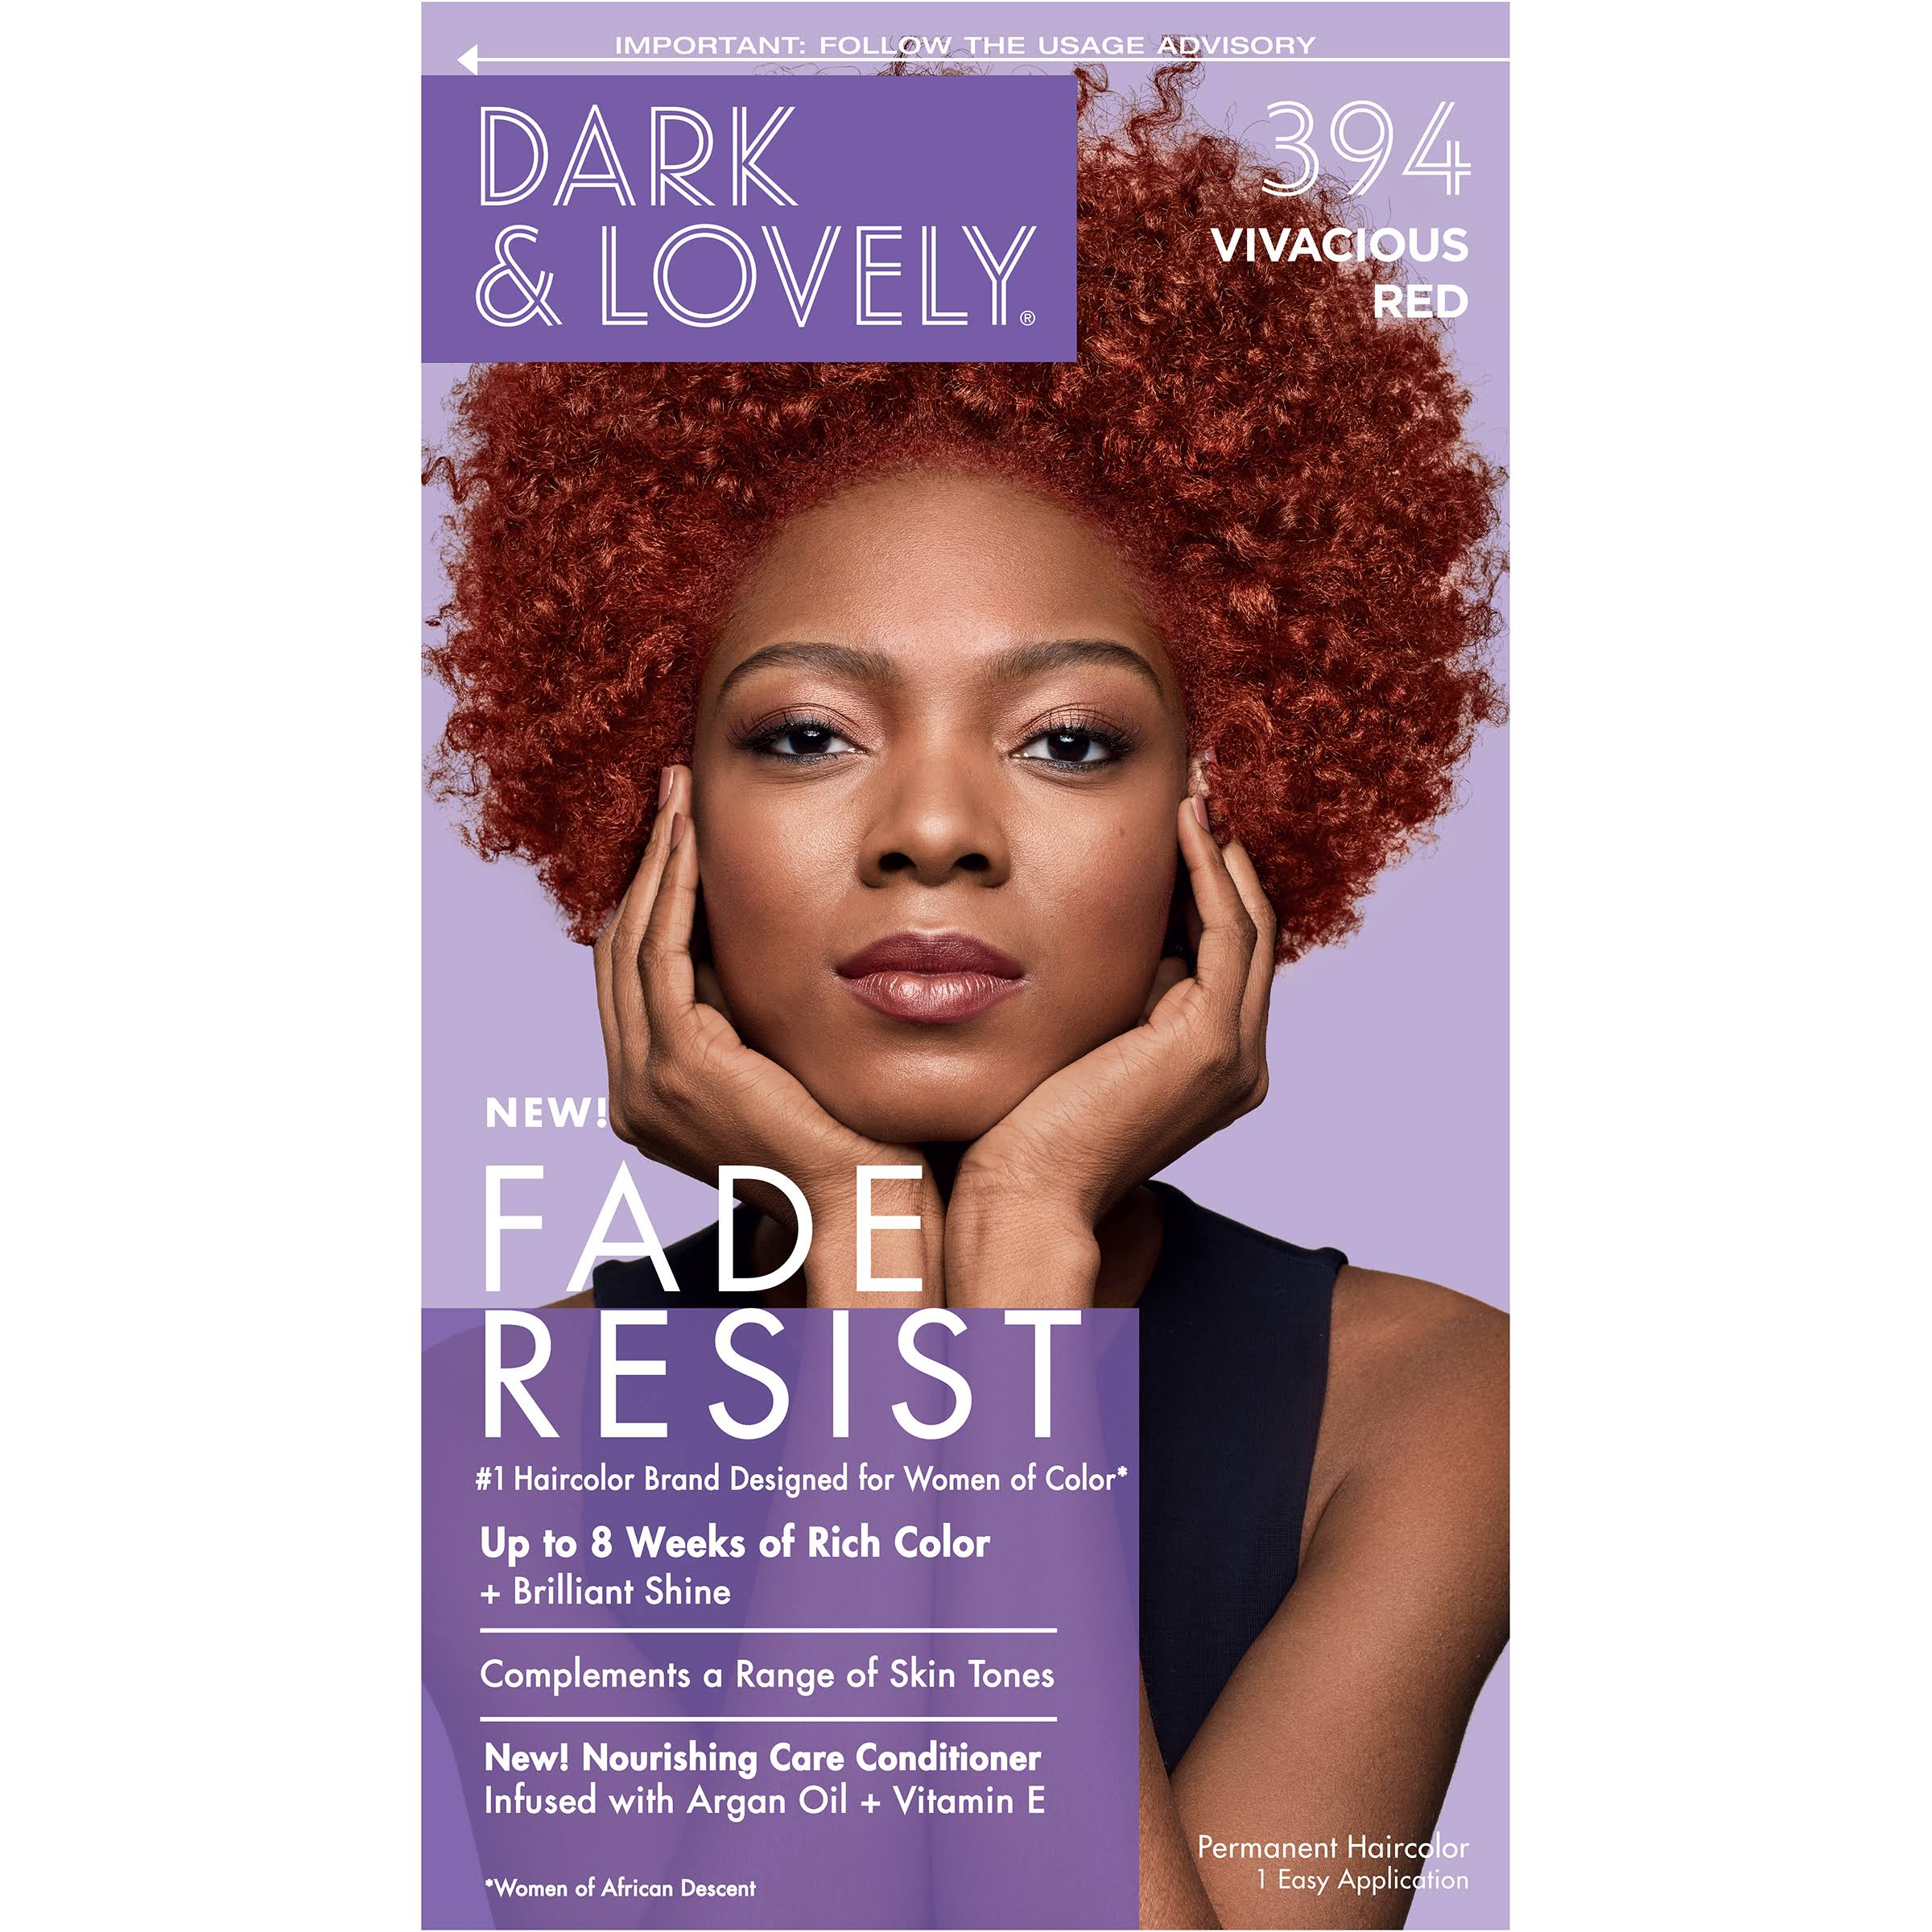 SoftSheen-Carson Dark and Lovely Hair Color - $394 Vivacious Red